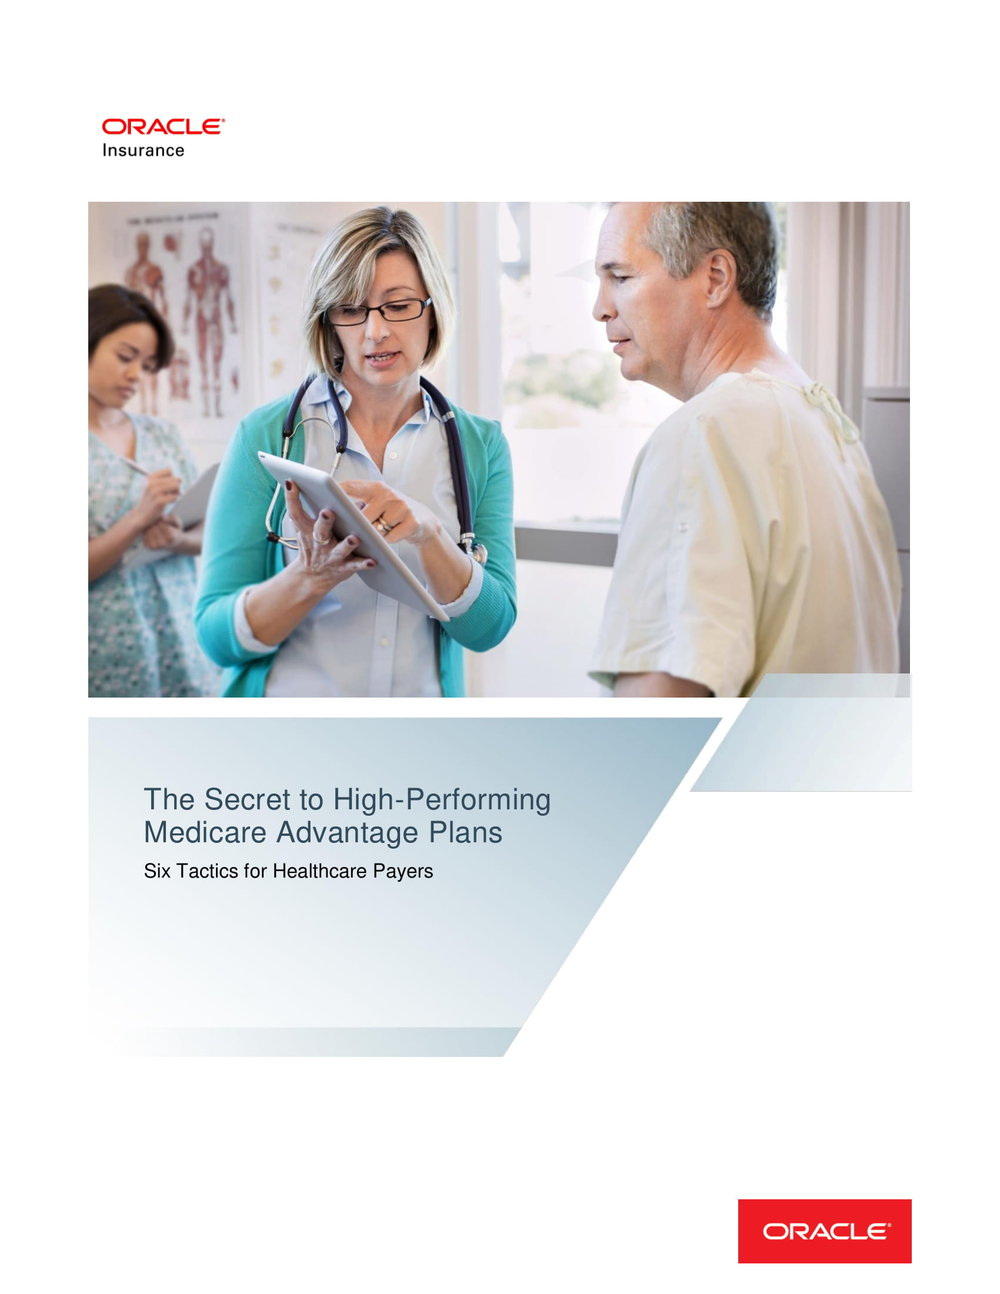 The Secret to High-Performing Medicare Advantage Plans